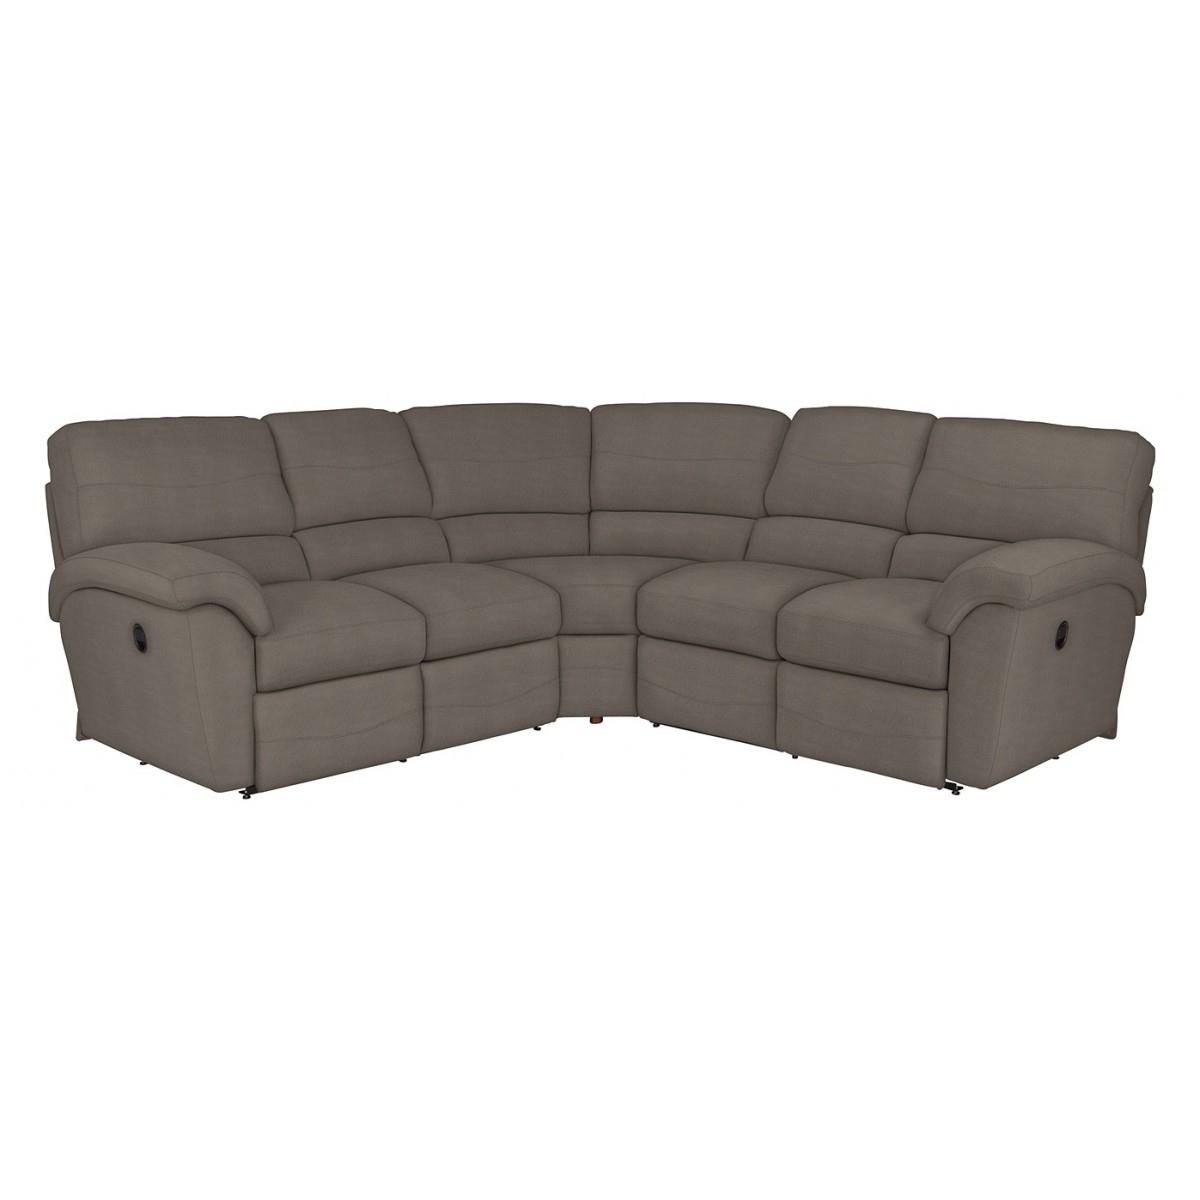 Widely Used Z Boy Reese Reclining Sectional Within Lazy Sofas Gallery 9 Of